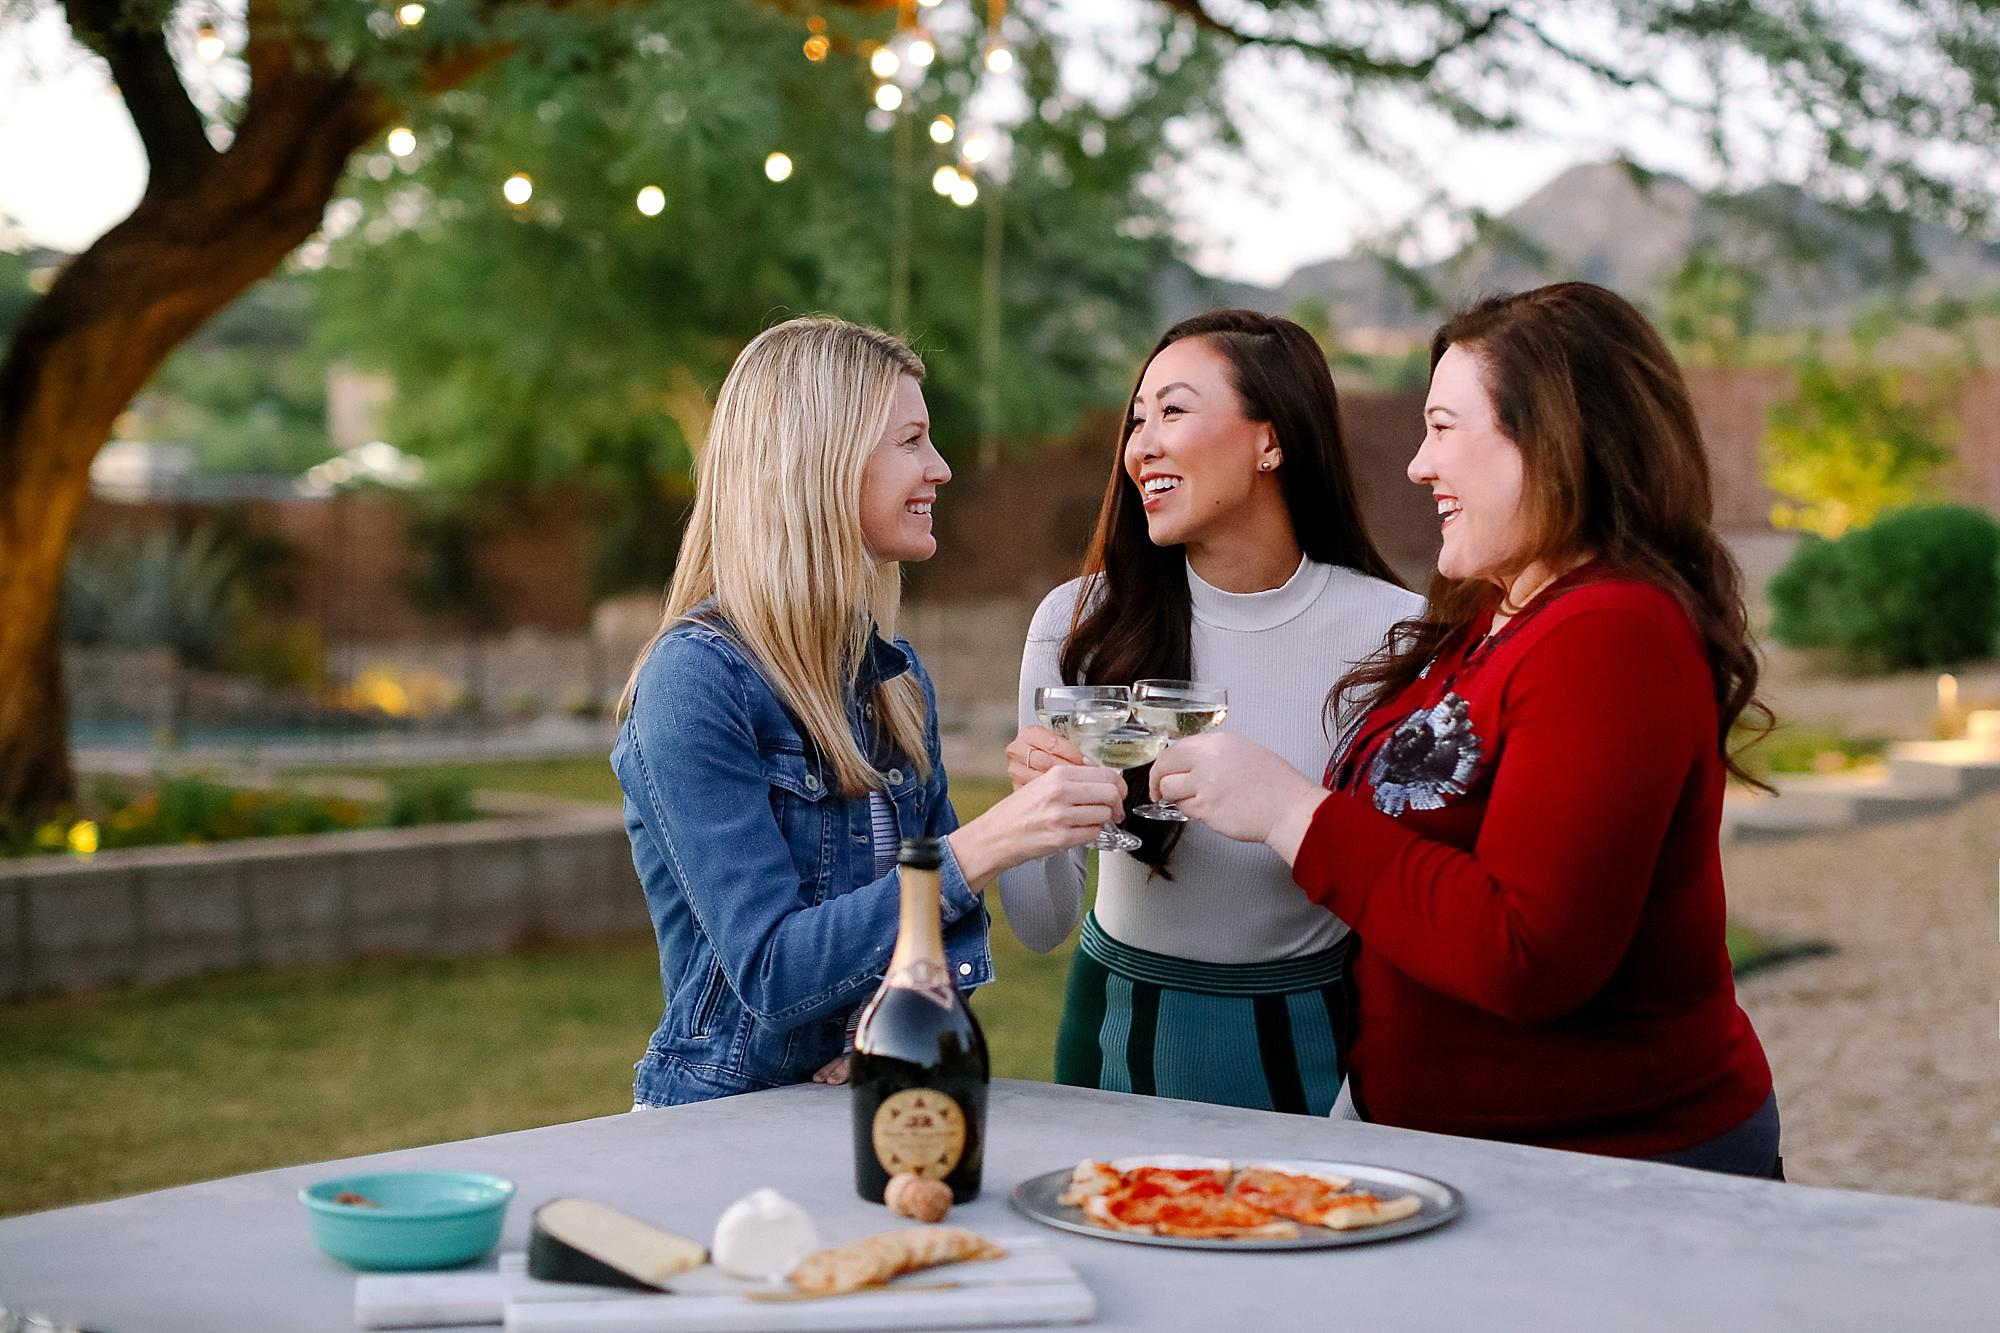 santa margherita prosecco superiore set by mylar alphabet balloons and the an outdoor pizza fireplace lifestyle blogger Diana Elizabeth in phoenix arizona toasting with friends